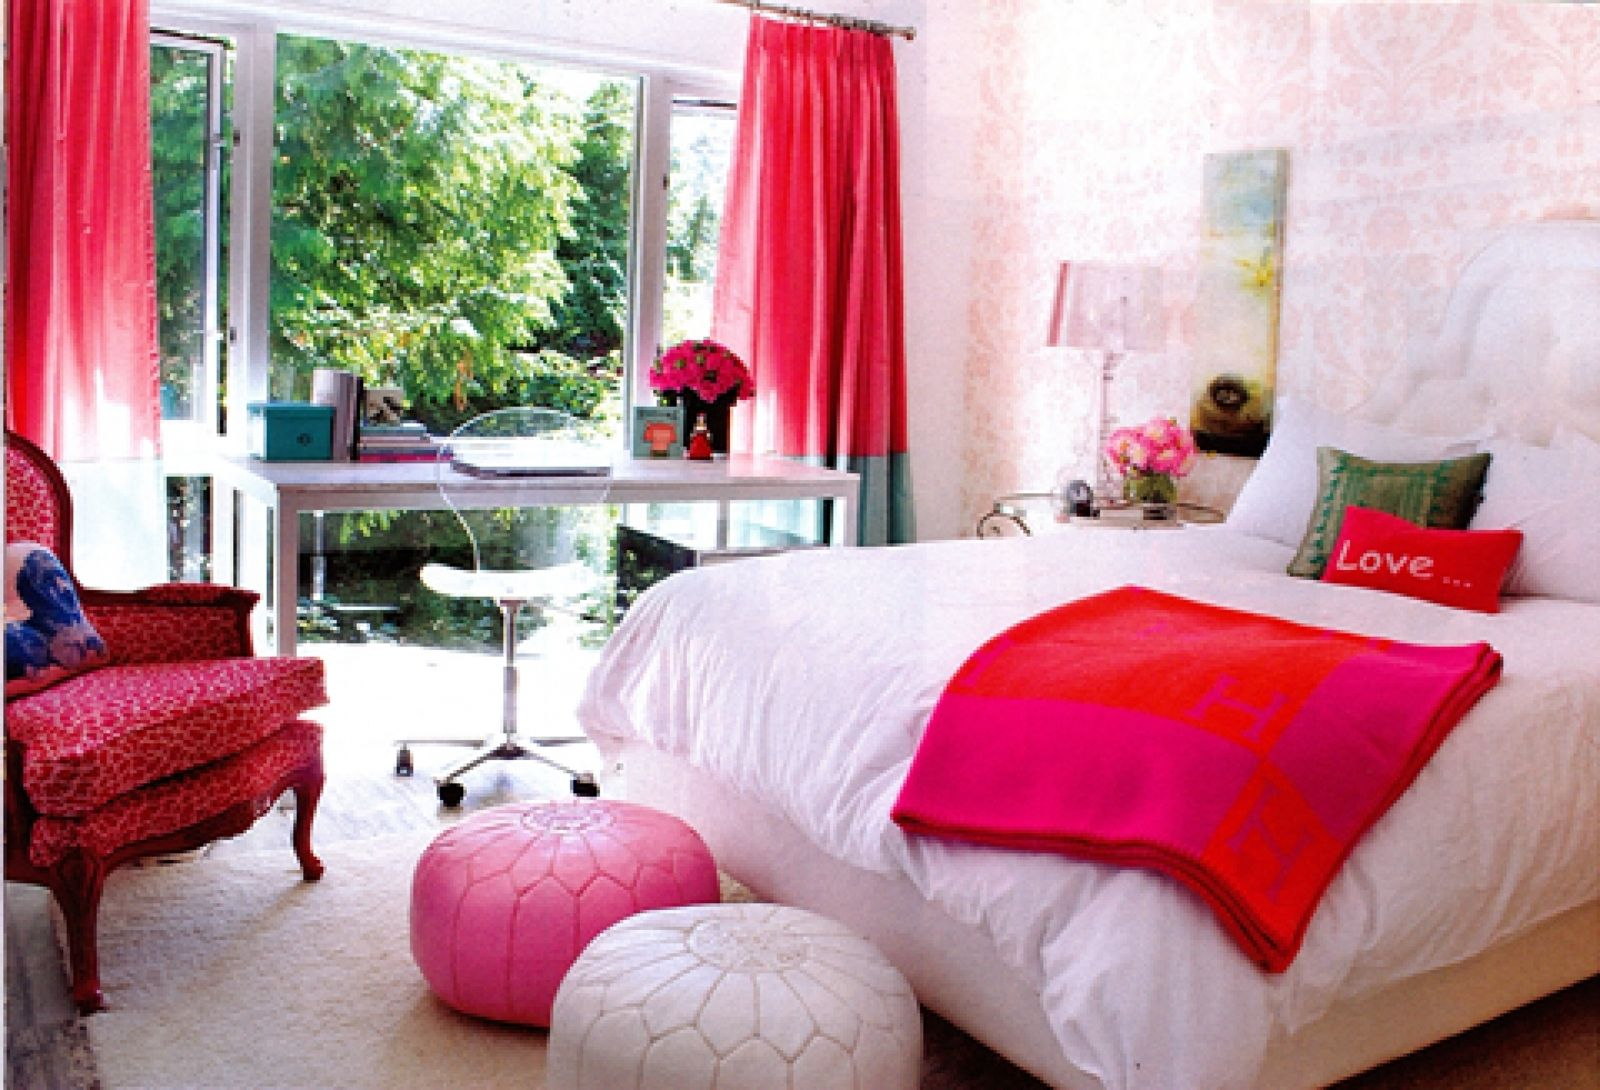 Bedroom interior furniture design how to give your home a budget friendly makeover  teenage room red